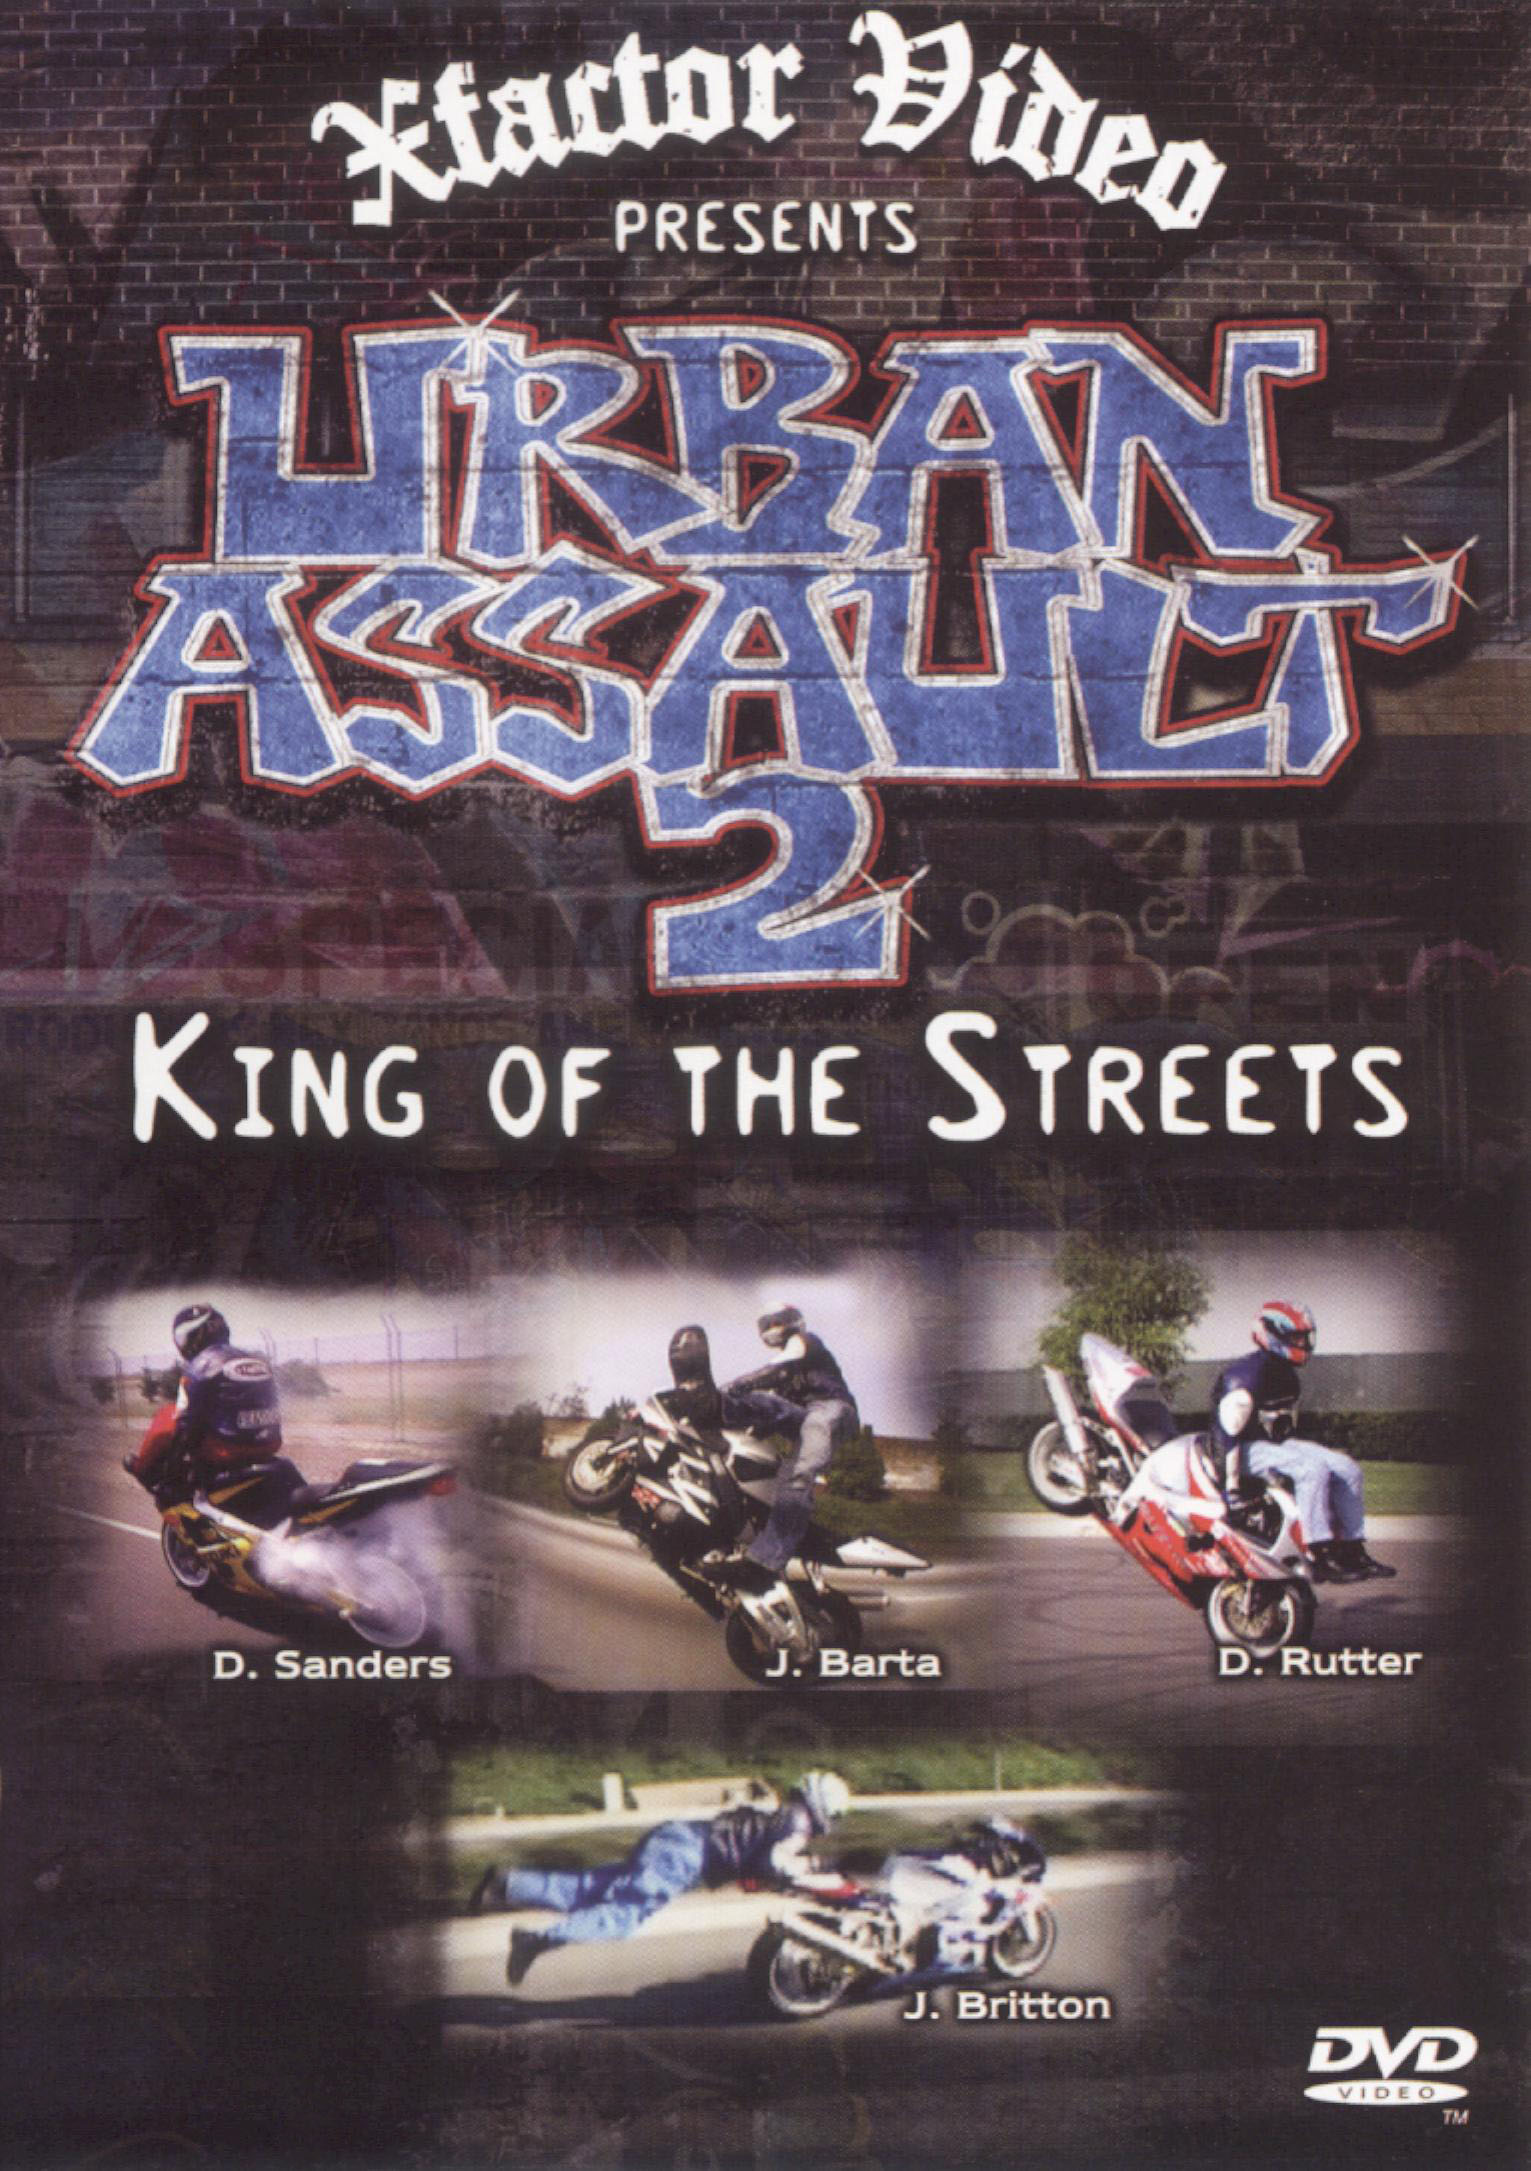 Urban Assault, Vol. 2